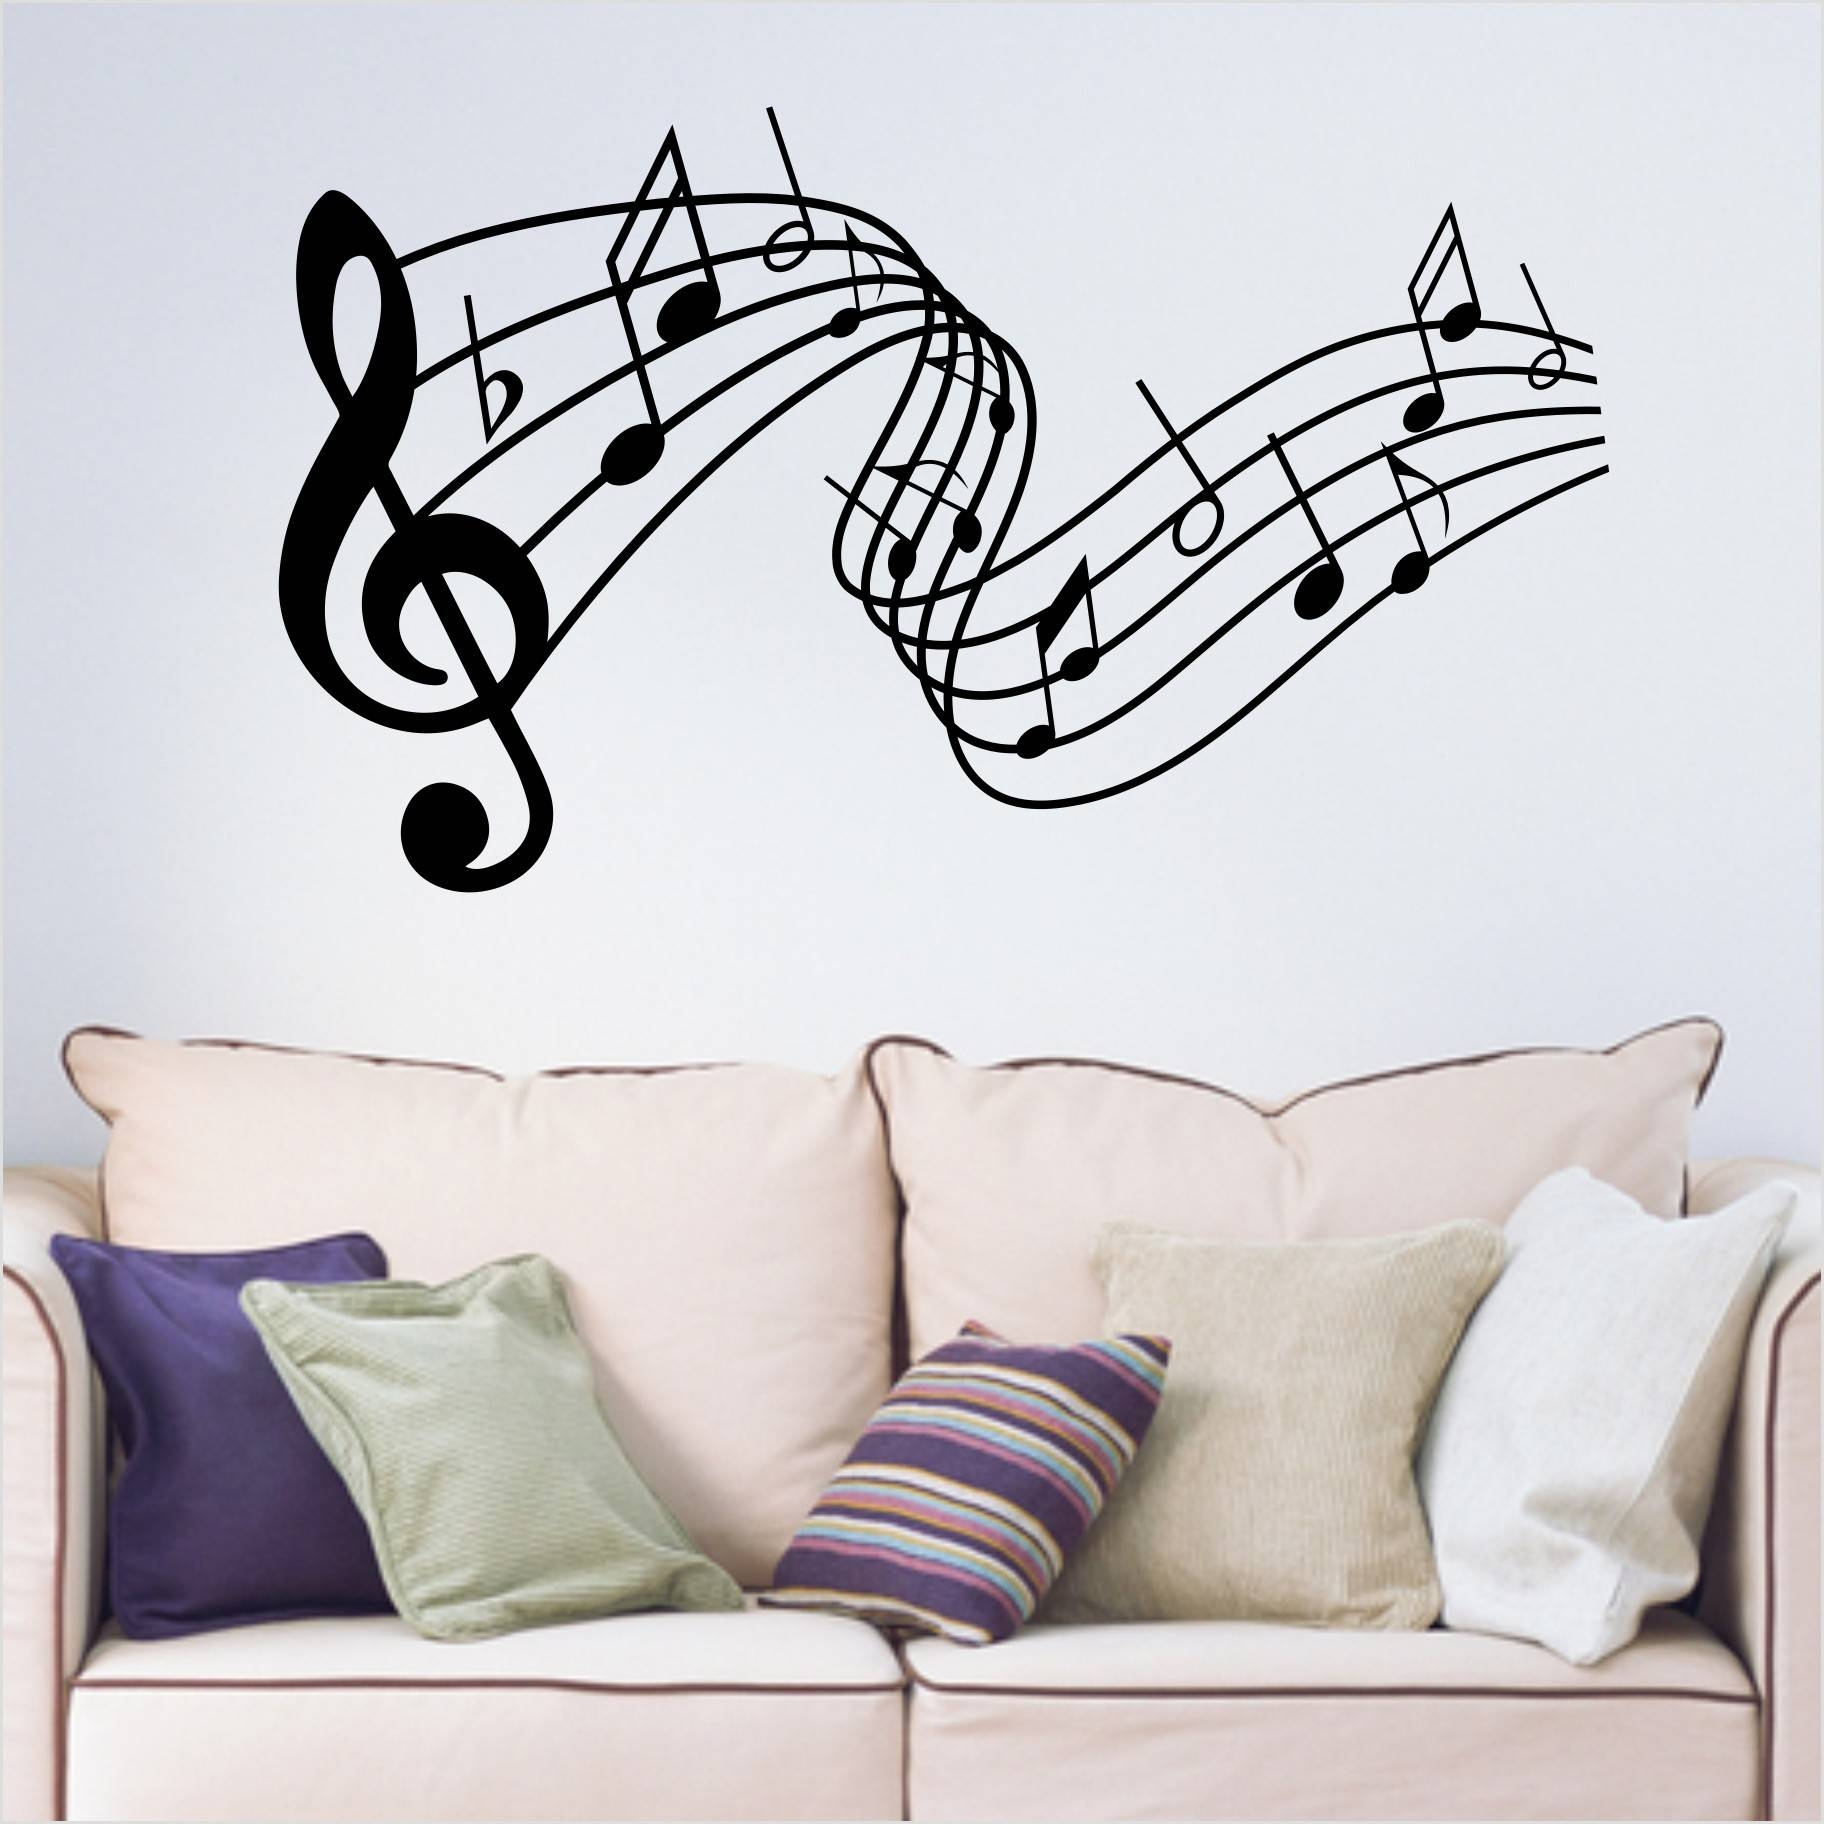 Music Notes Wall Art Decals Images That Really Cool – Desainnow With 2018 Music Note Wall Art (View 11 of 20)